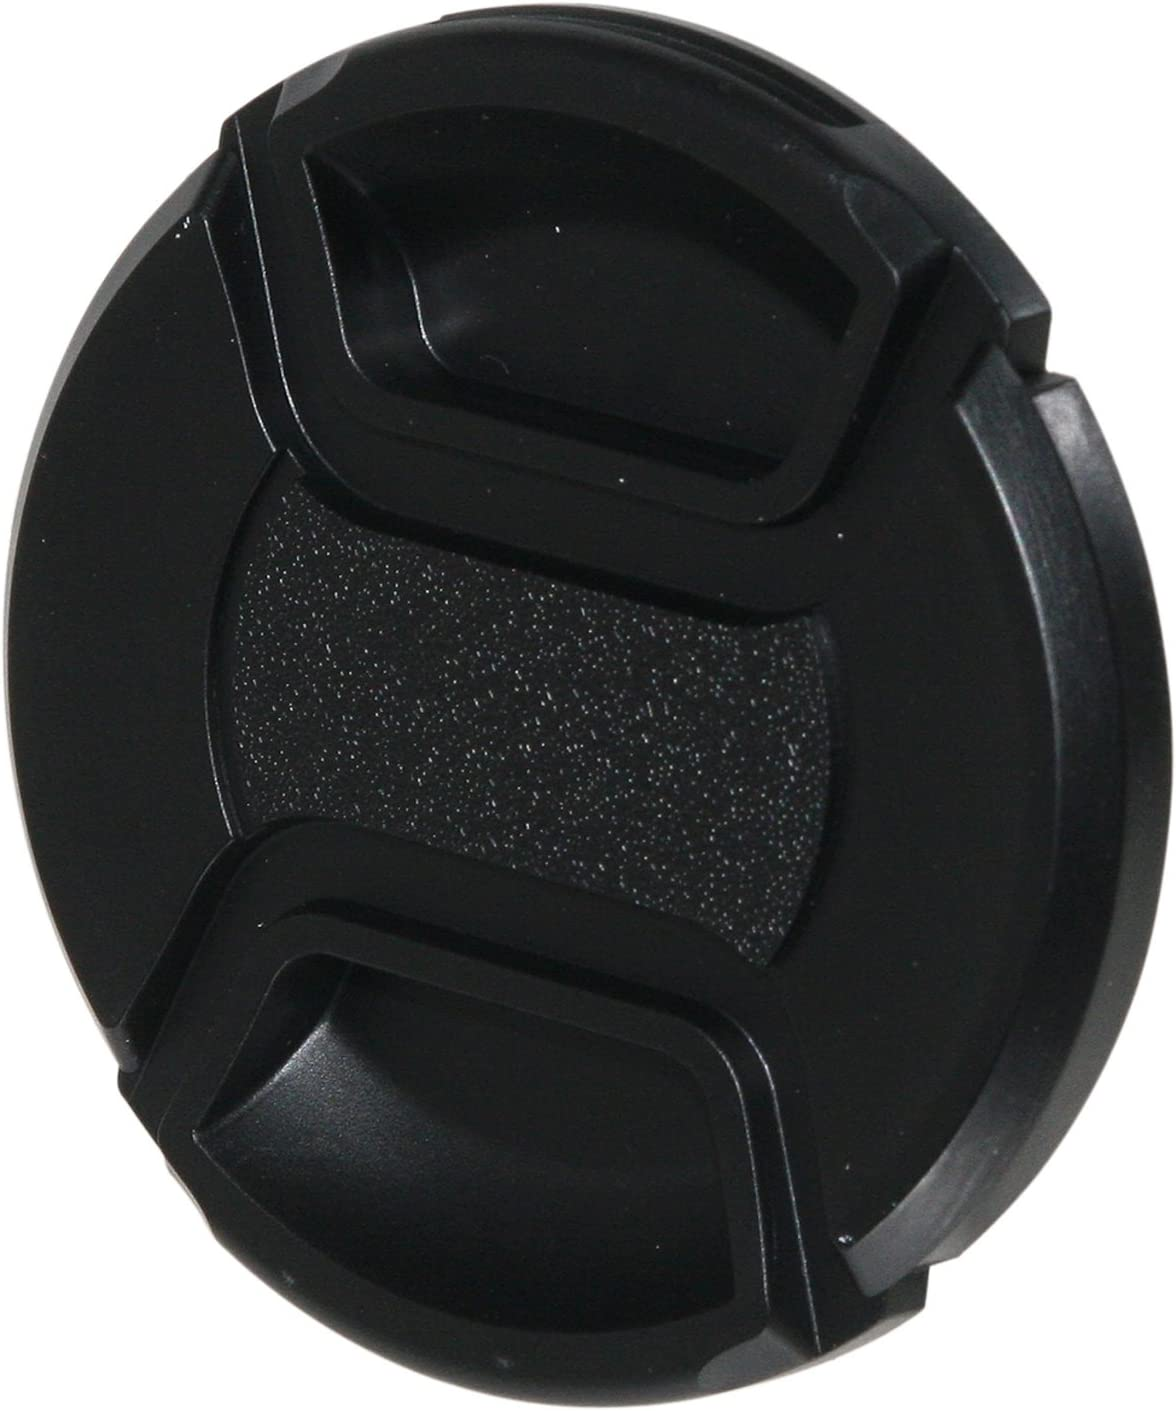 AGFA Max Fashion 68% OFF Snap On Lens Cap with Double-Action Design Spring 55mm APCA